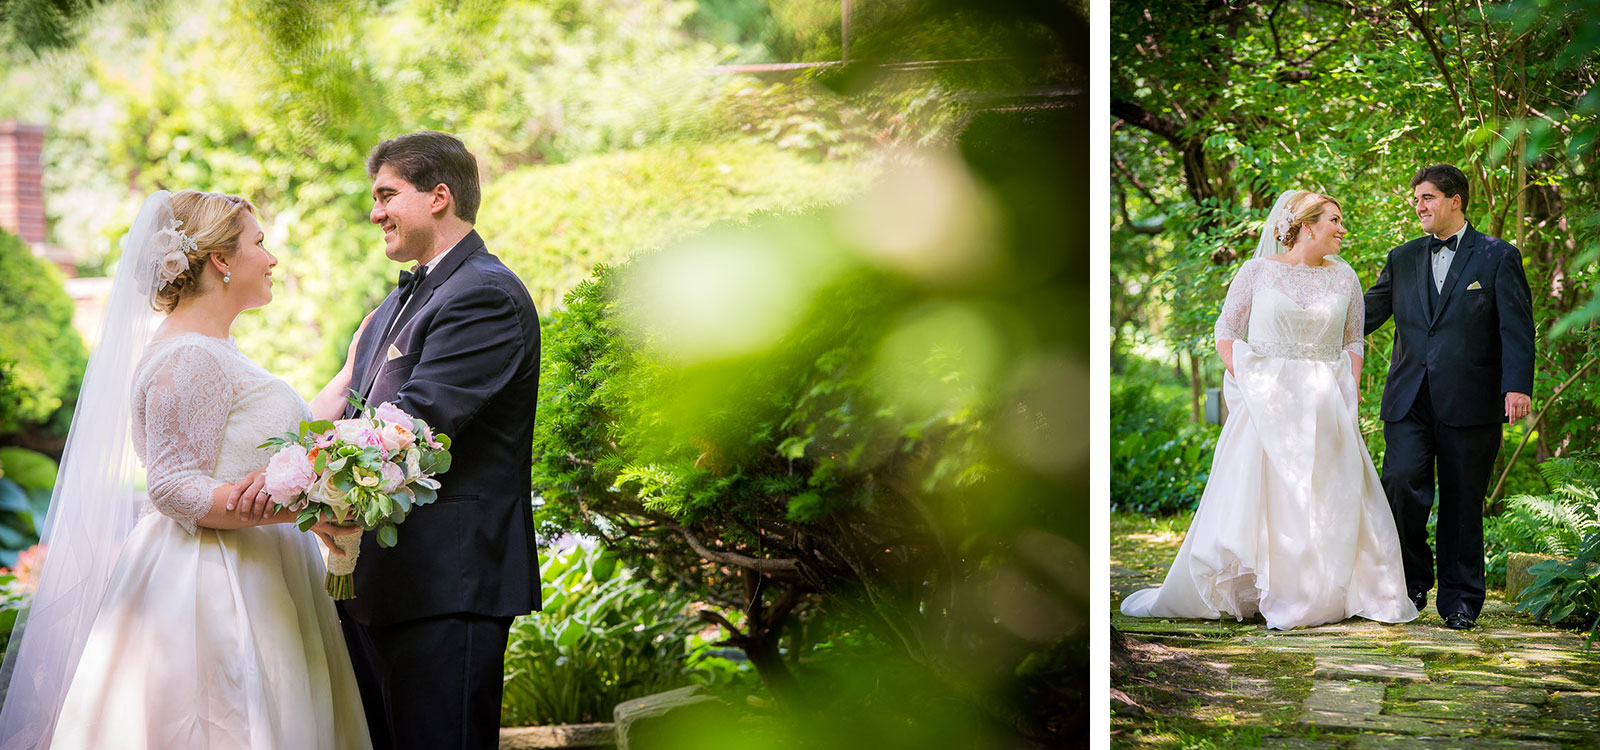 eric_and_christy_photographers_blog_wedding_emilypeter-17-18